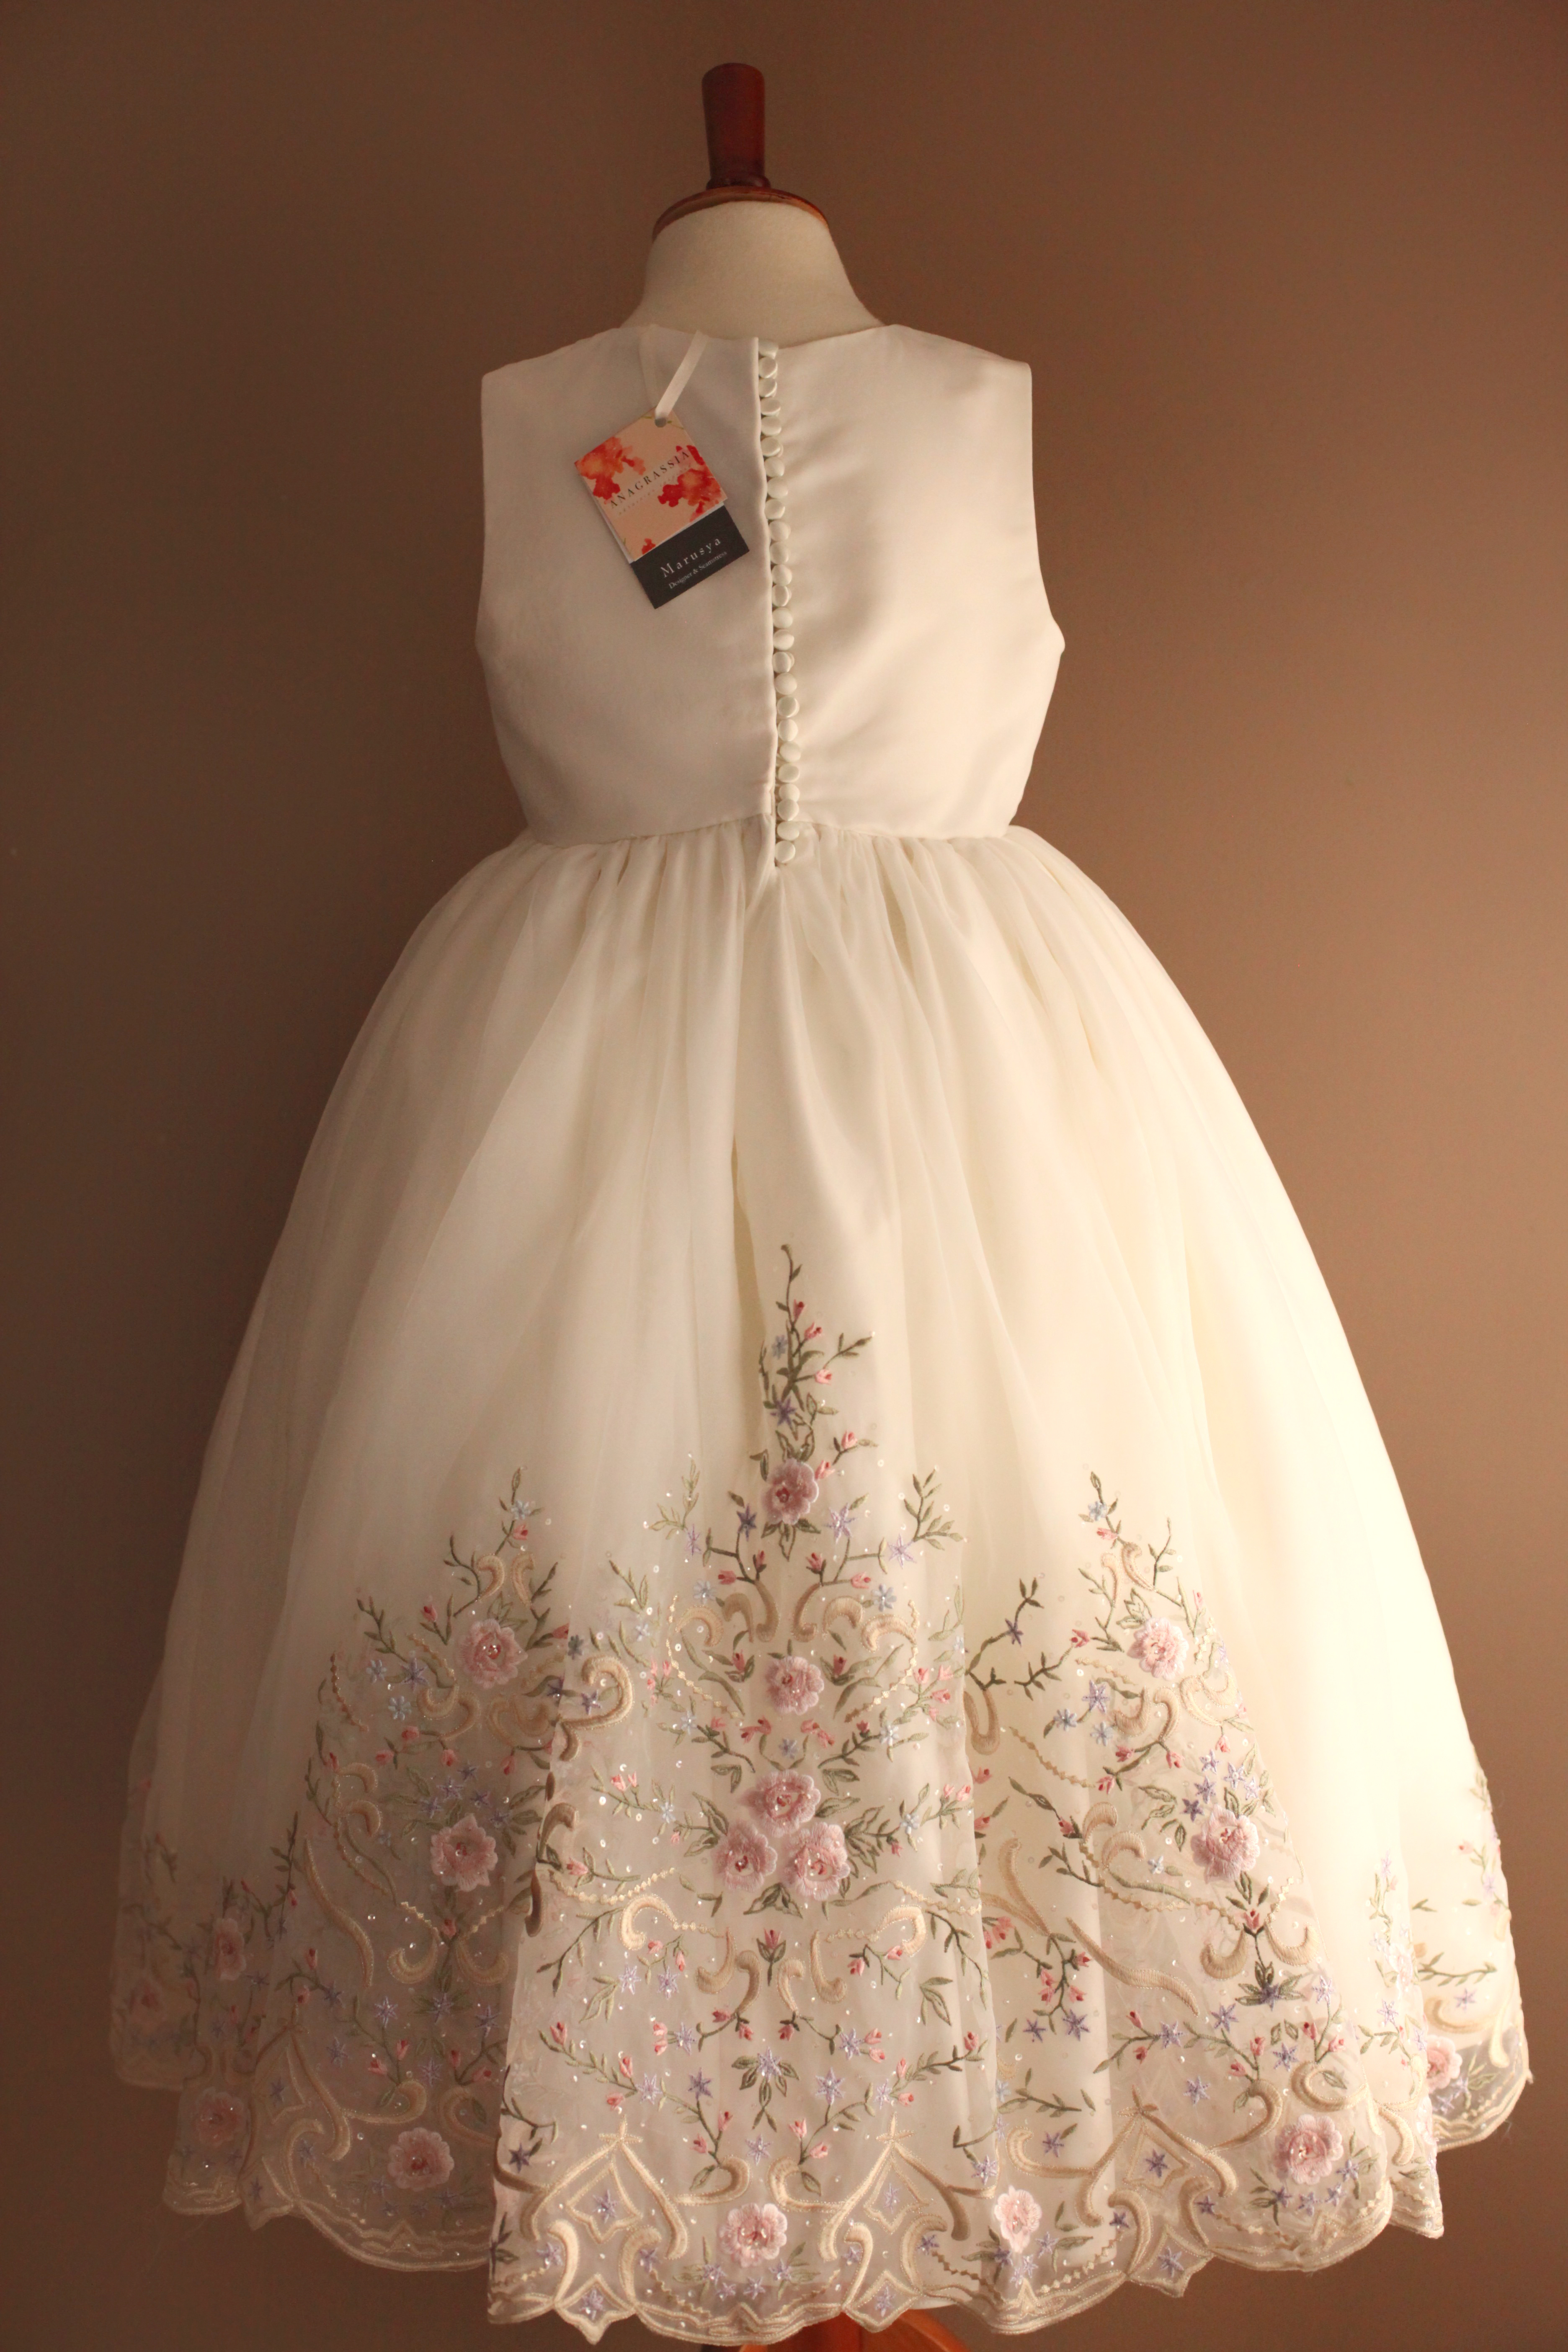 Chloe S First Holy Communion Dress From Mother S Wedding